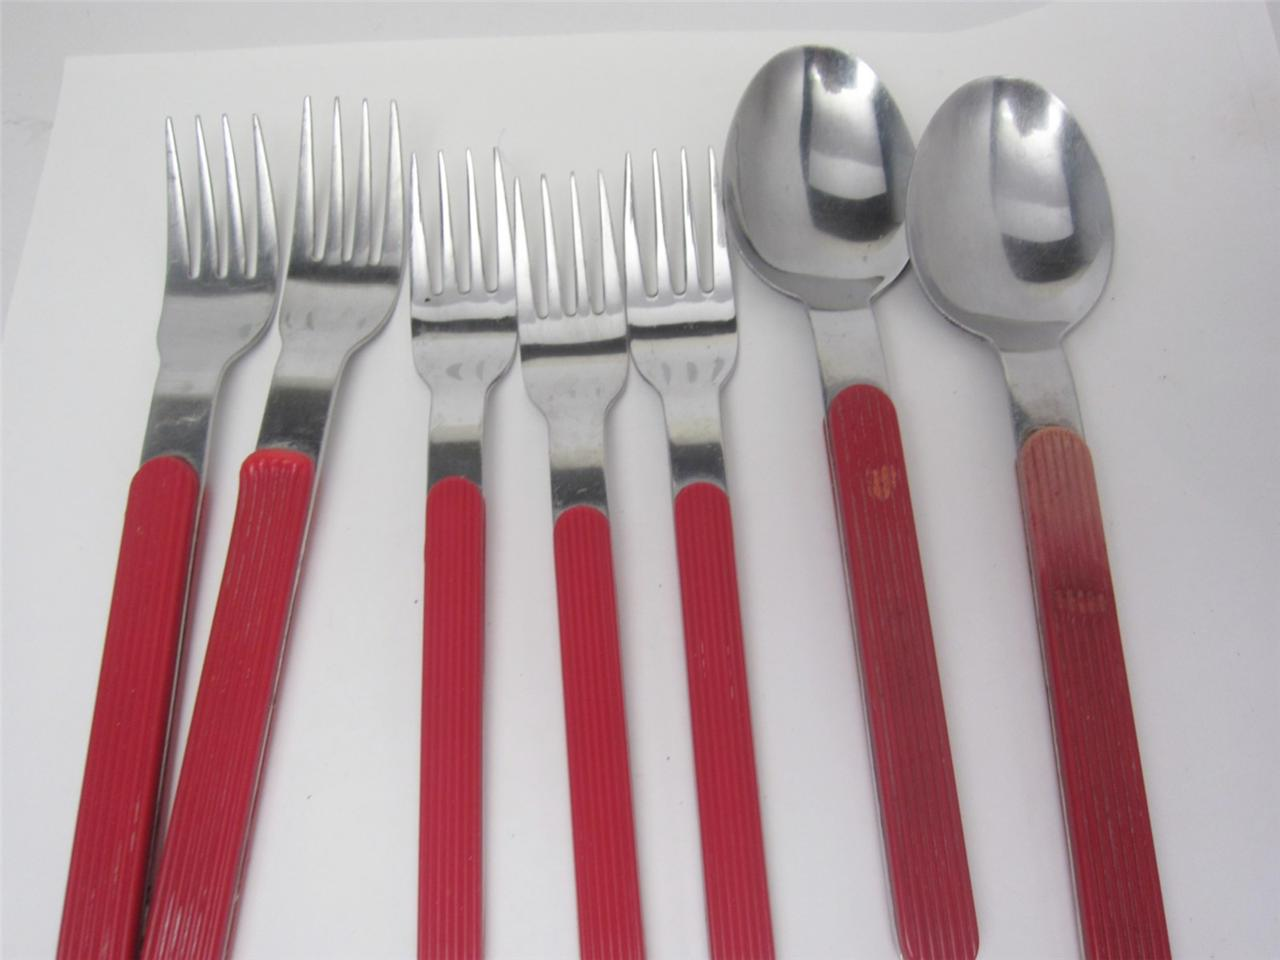 Red Handle Flatware Crown Corning Retro Vintage Stainless Flatware Red Handle Korea